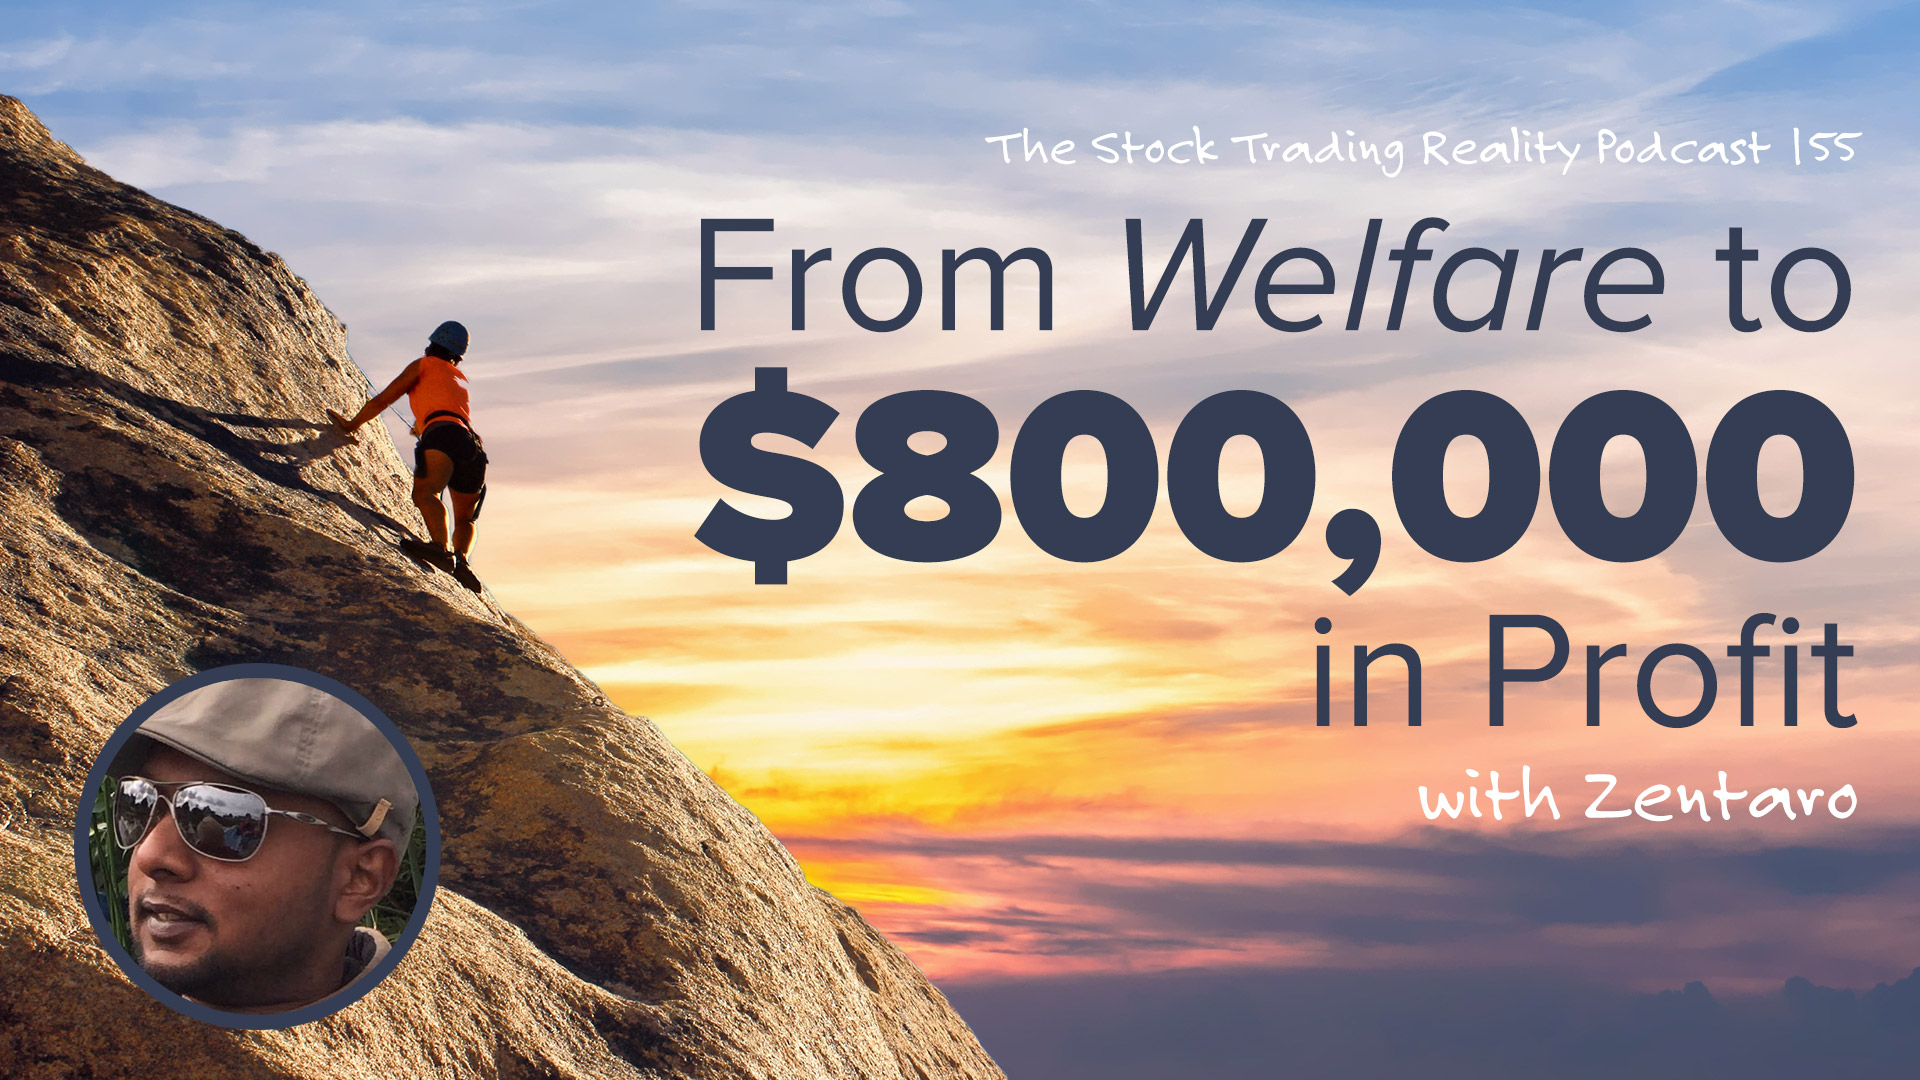 STR 155: From Welfare to $800,000 in Profit